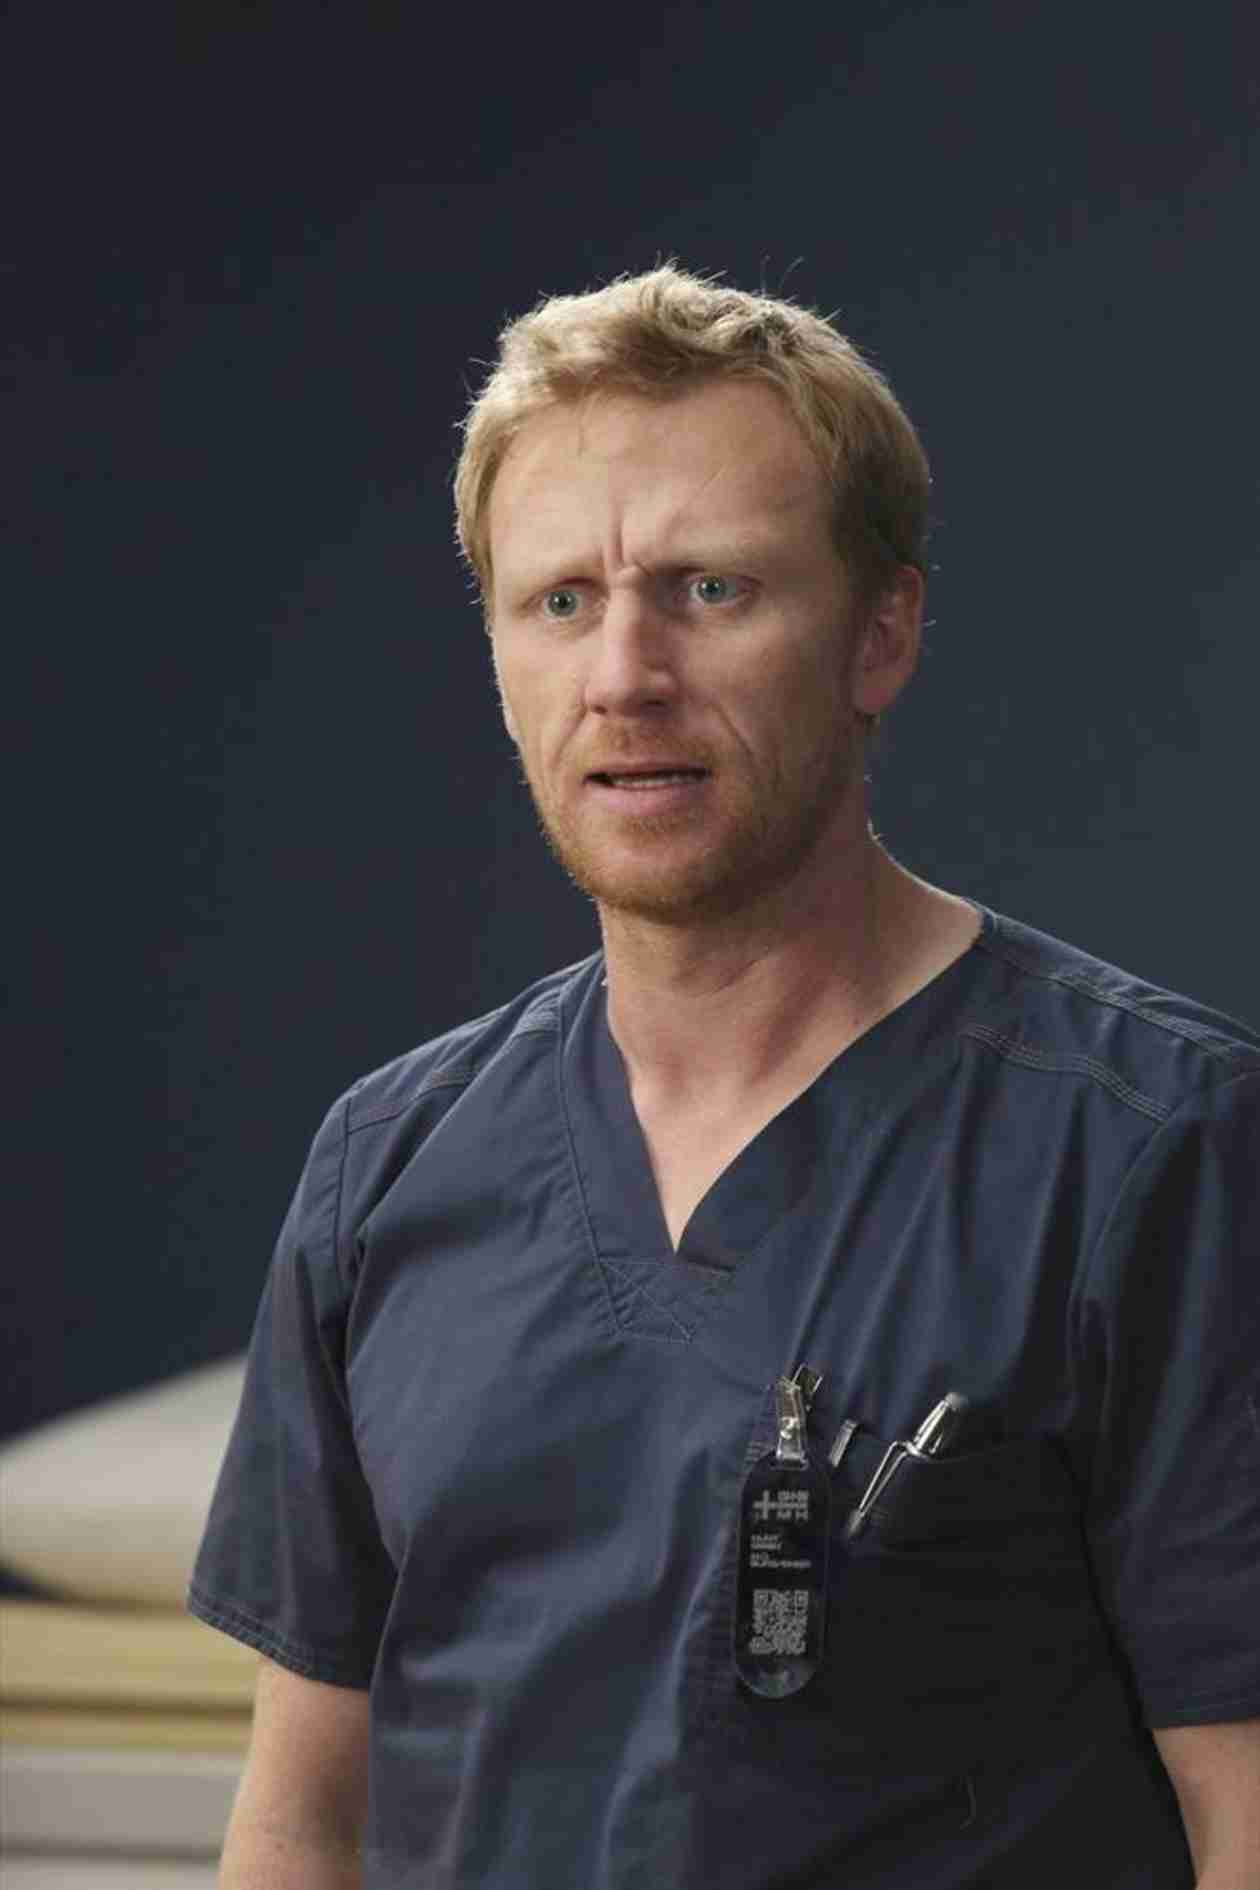 Grey's Anatomy Season 11: Will Owen Get a New Love Interest? Will It Be Amelia?